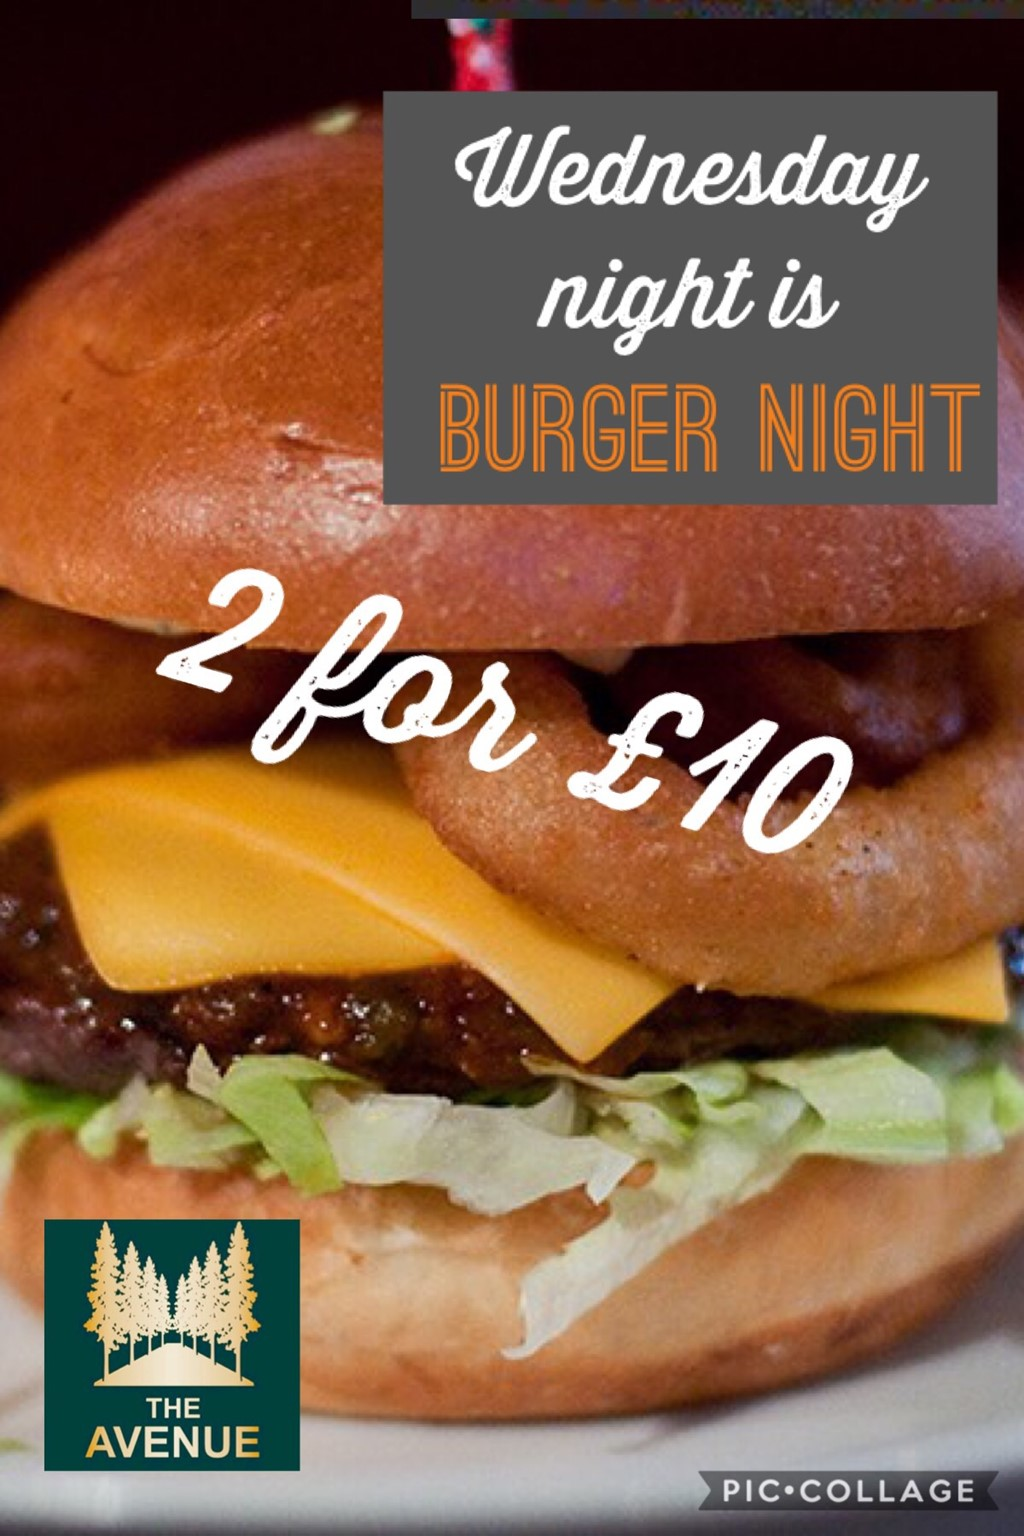 Burger night 2 for £10